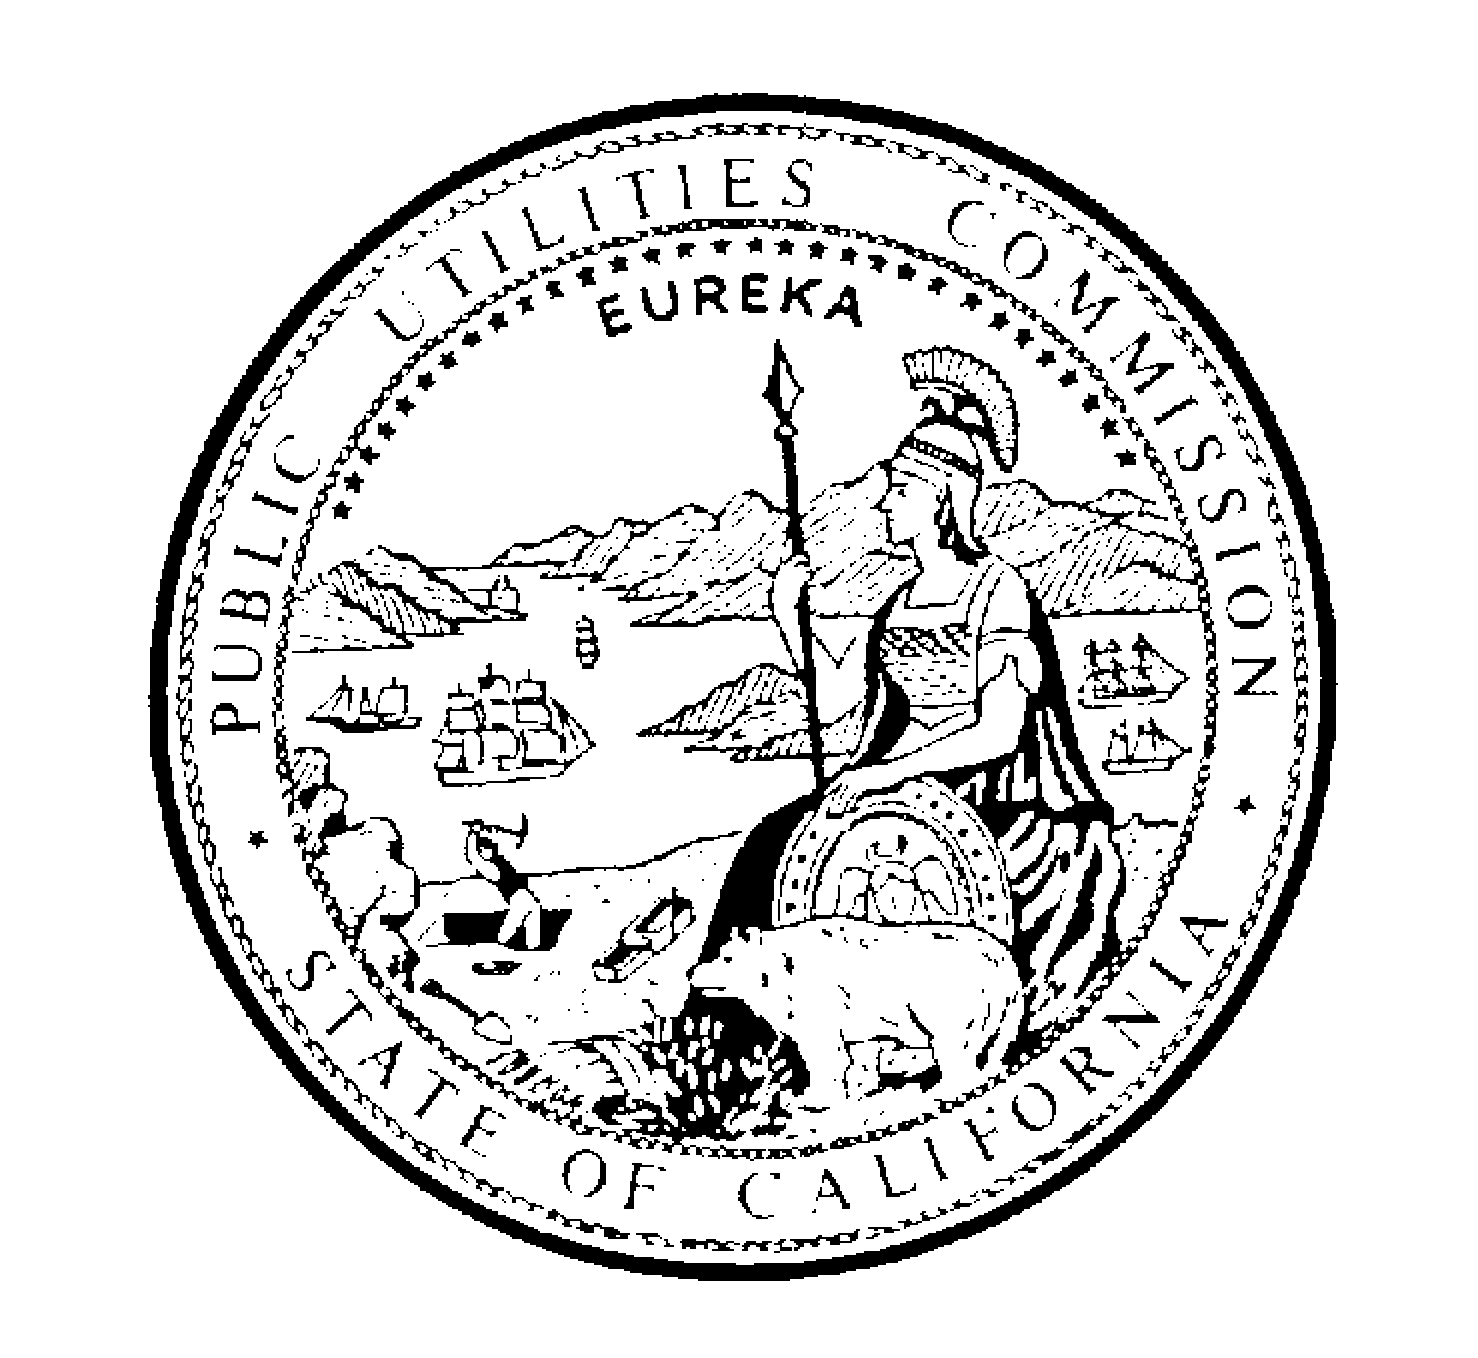 1478x1358 Fileseal Of The California Public Utilities Commission.png